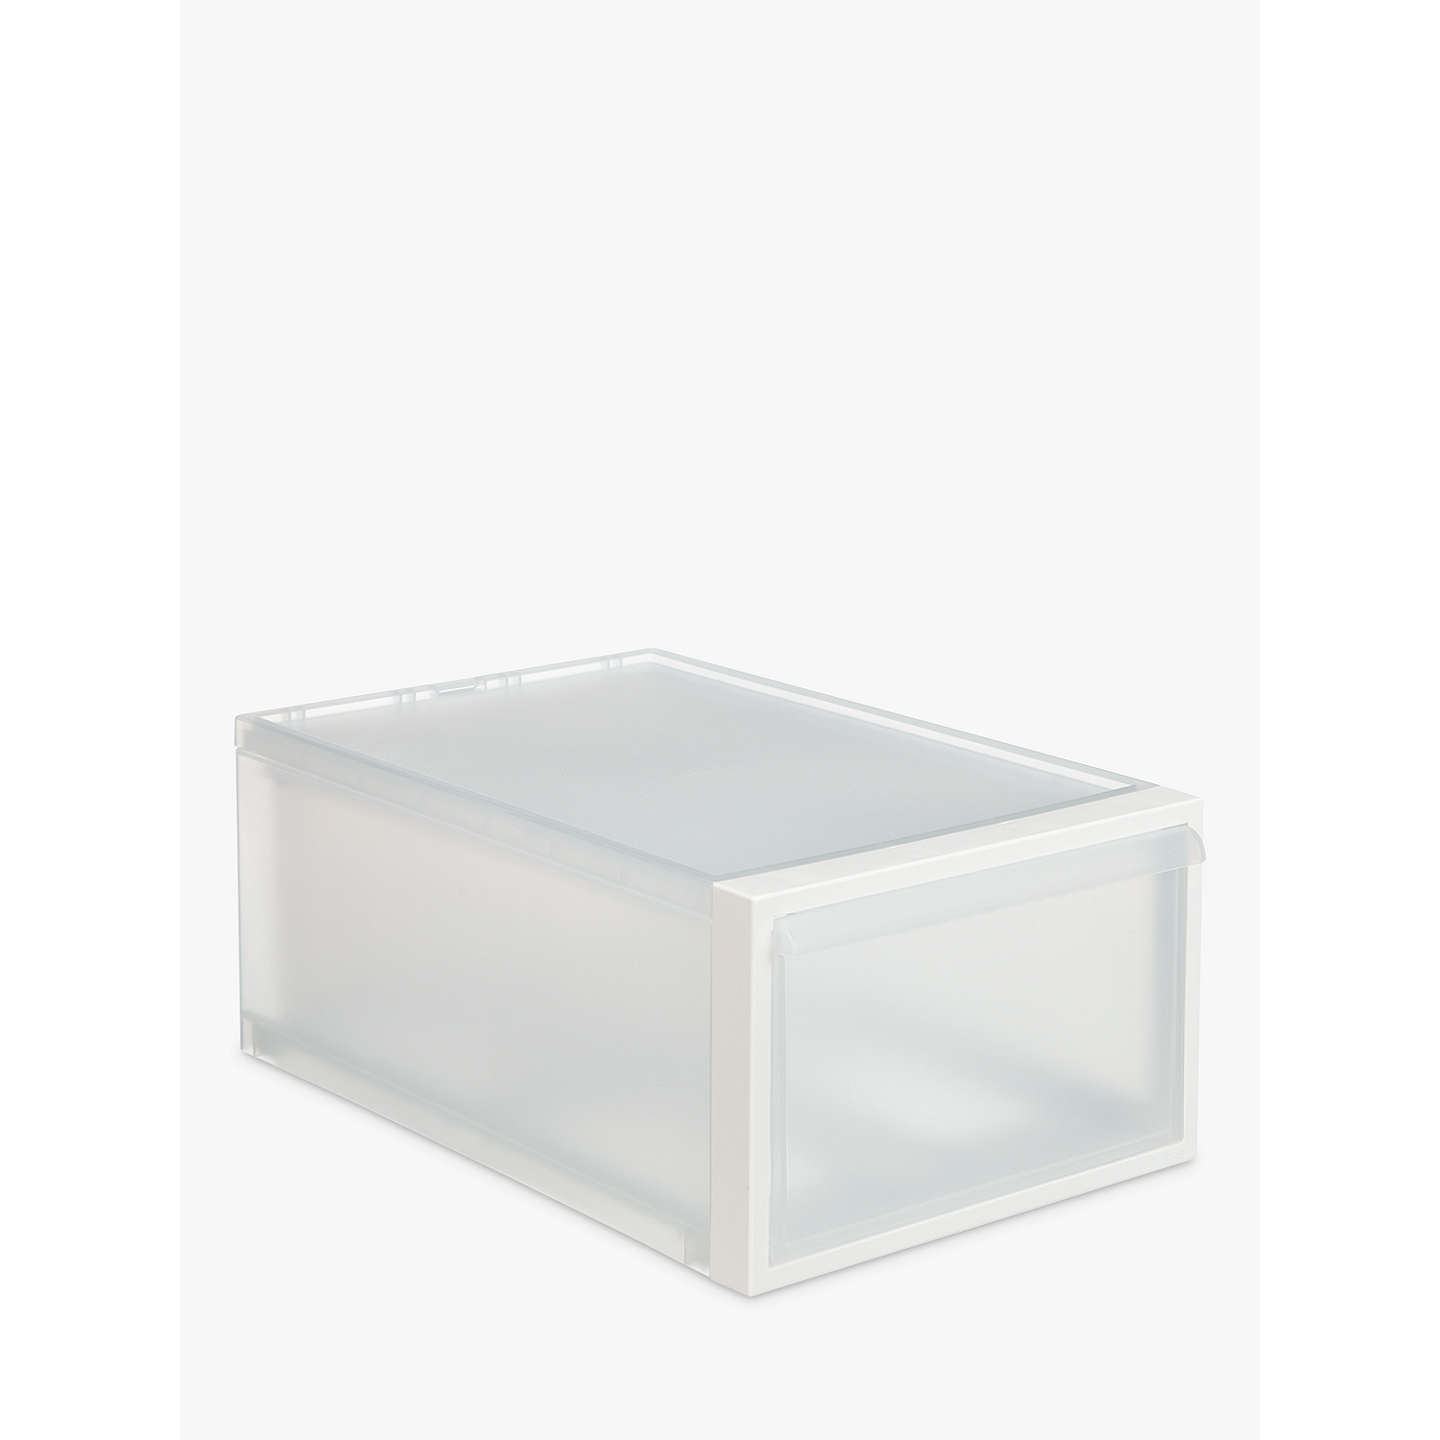 shoe drawers plastic storage web and small propped boxes storables closet profile x clear sweater box solutions